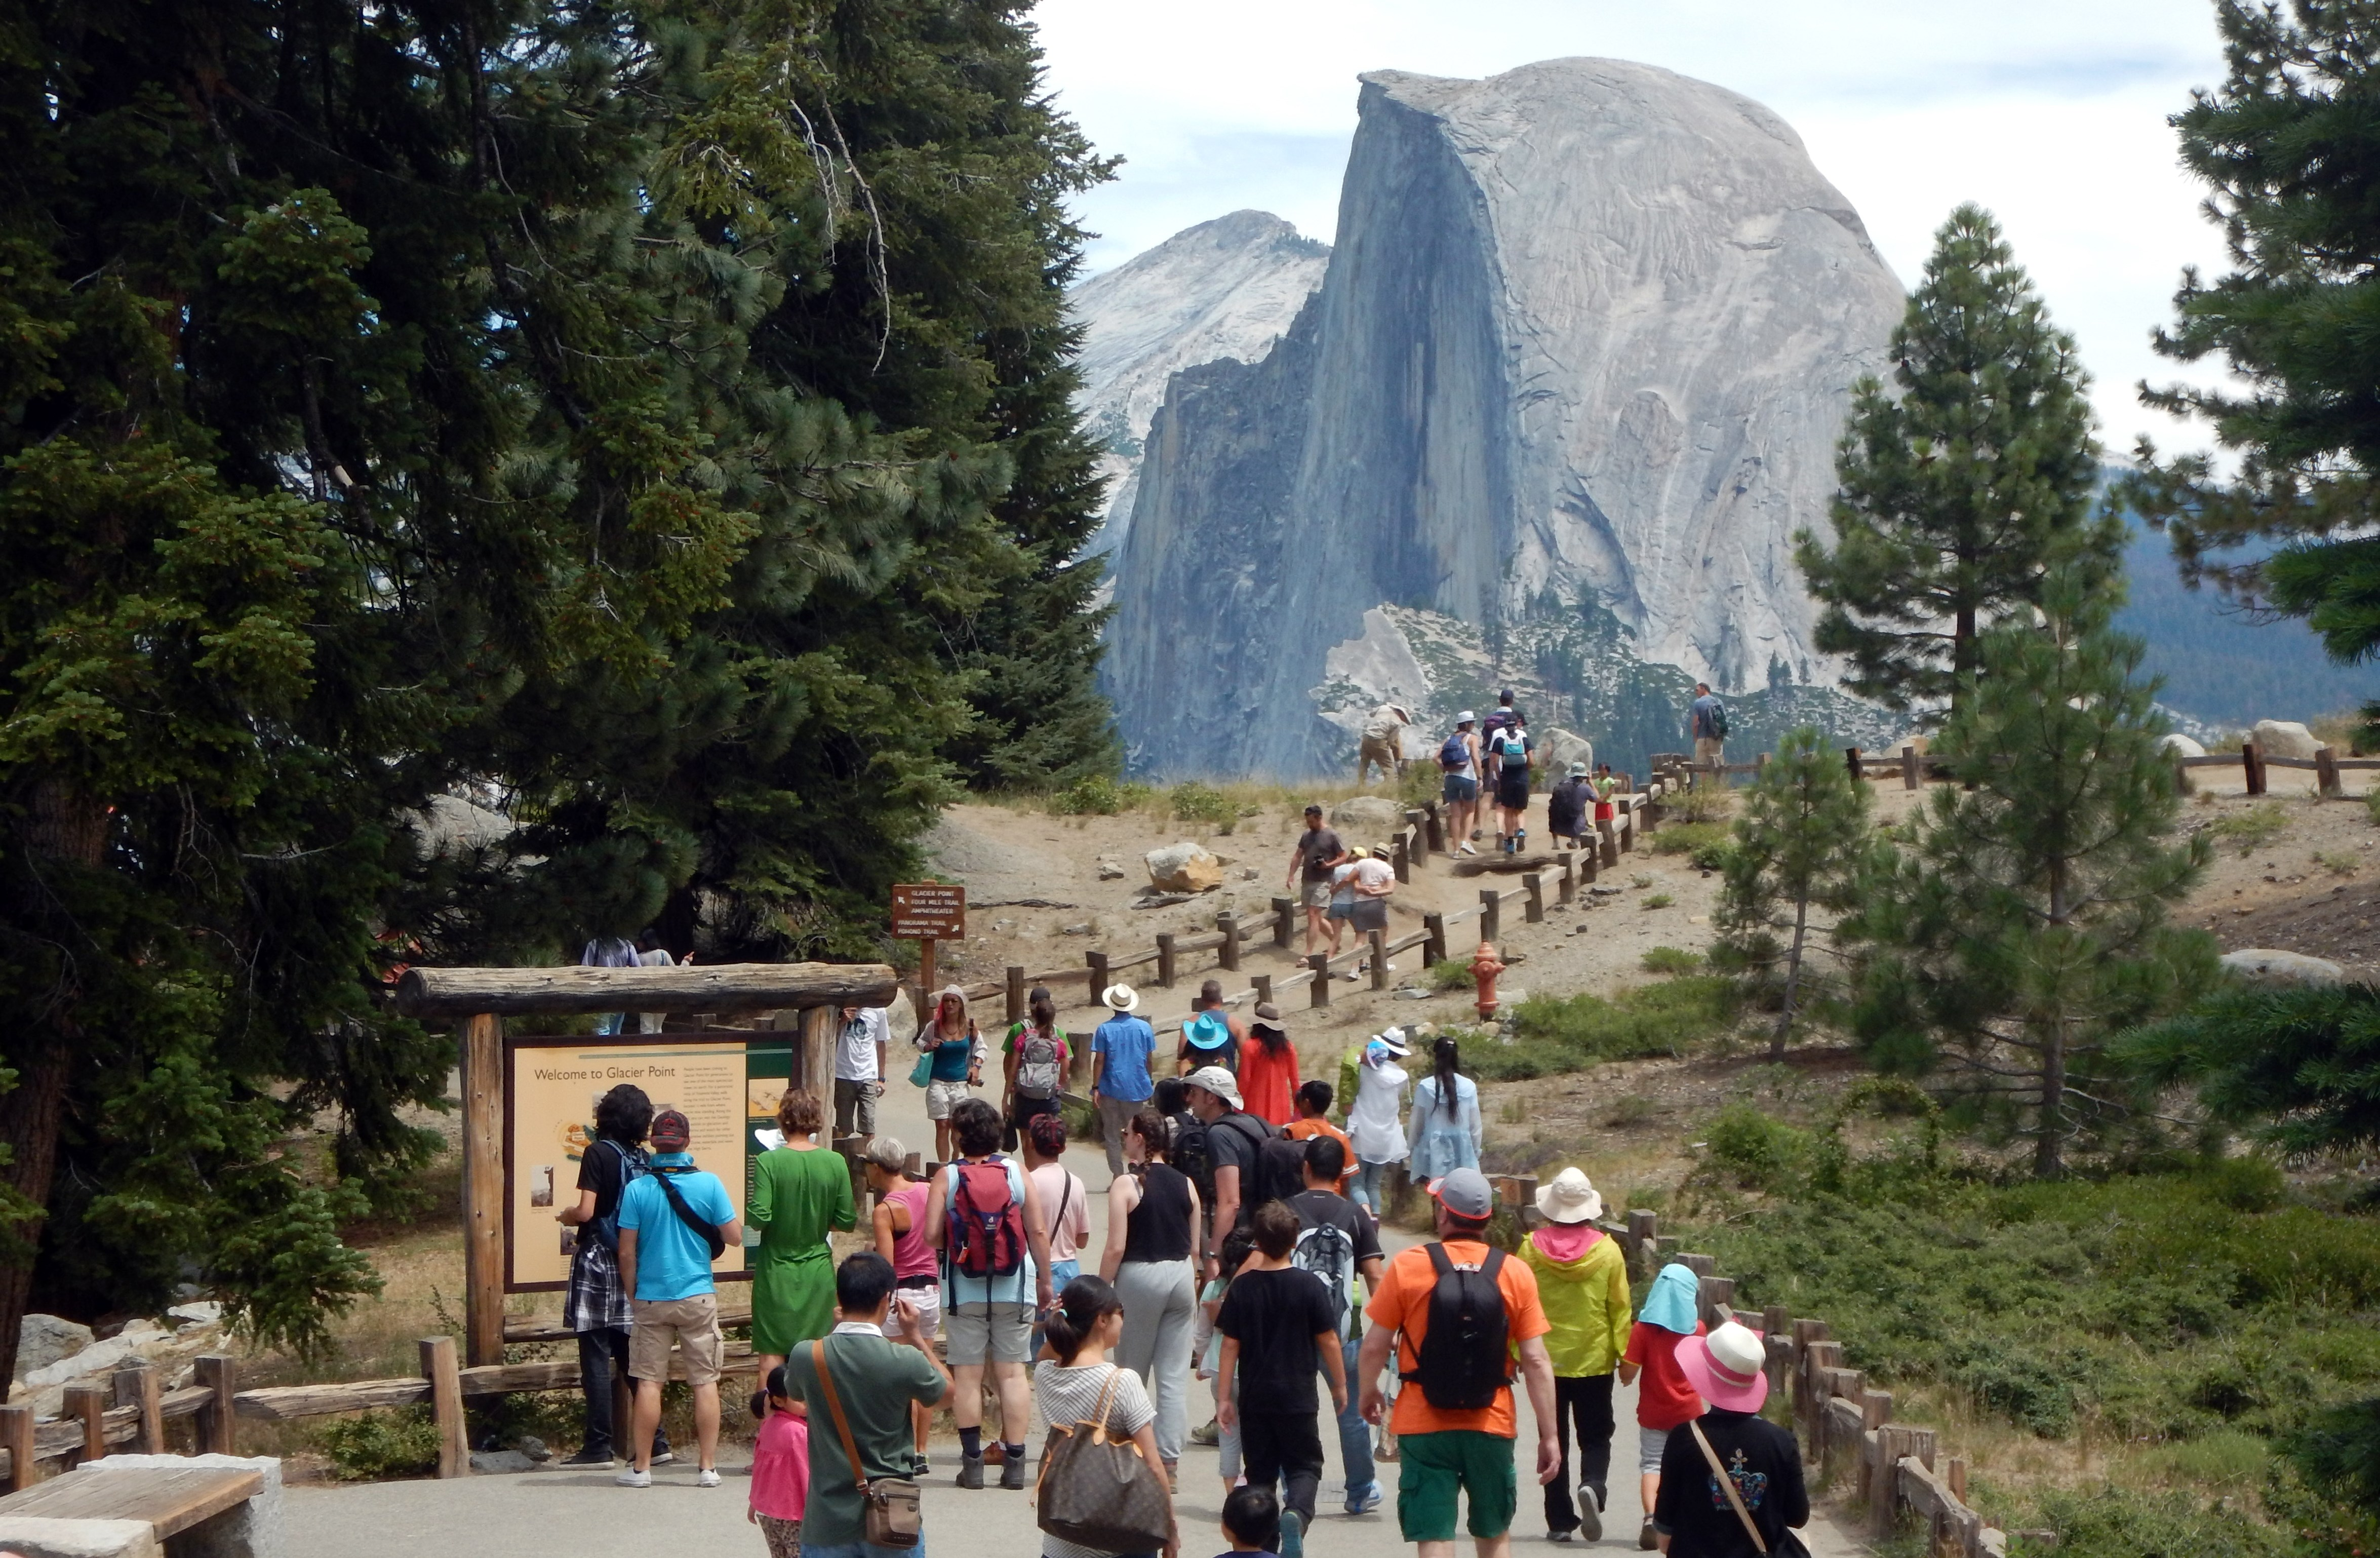 This Aug. 5, 2015, photo shows tourists walking out to Glacier Point with a background view of Half Dome at Yosemite National Park. (Credit: FREDERIC J. BROWN/AFP/Getty Images)